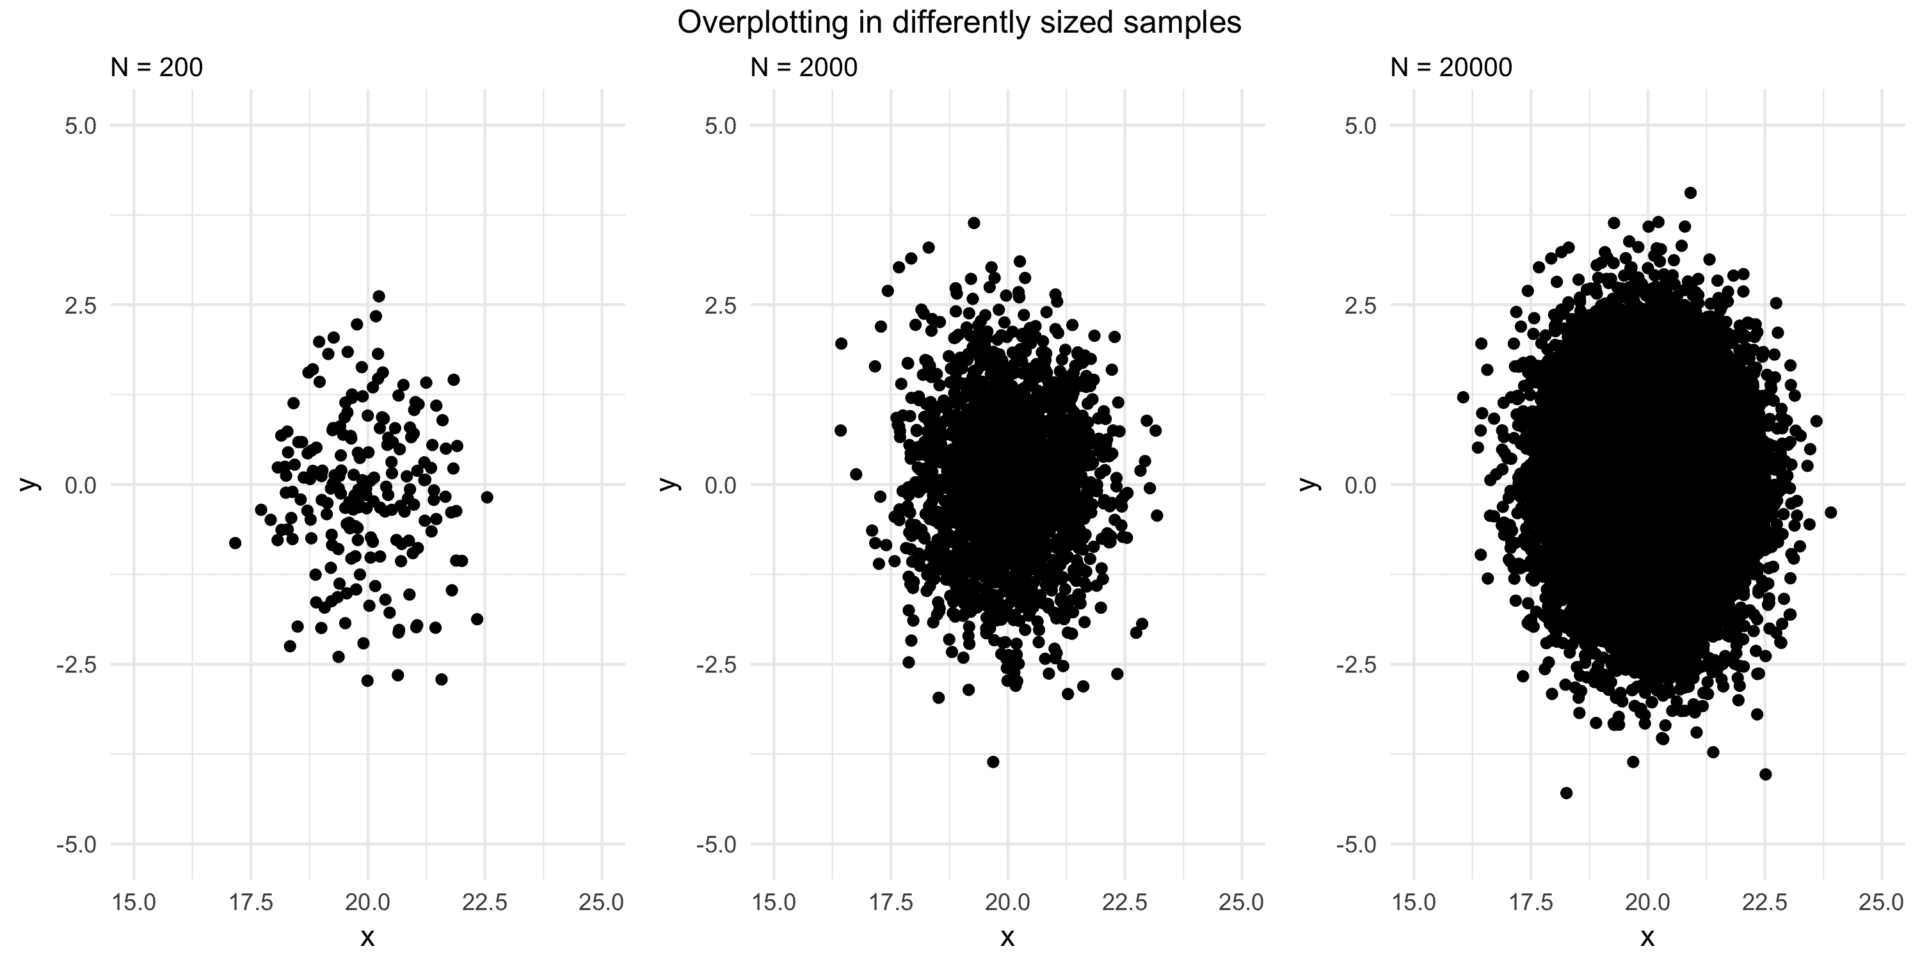 sample-size-and-overplotting